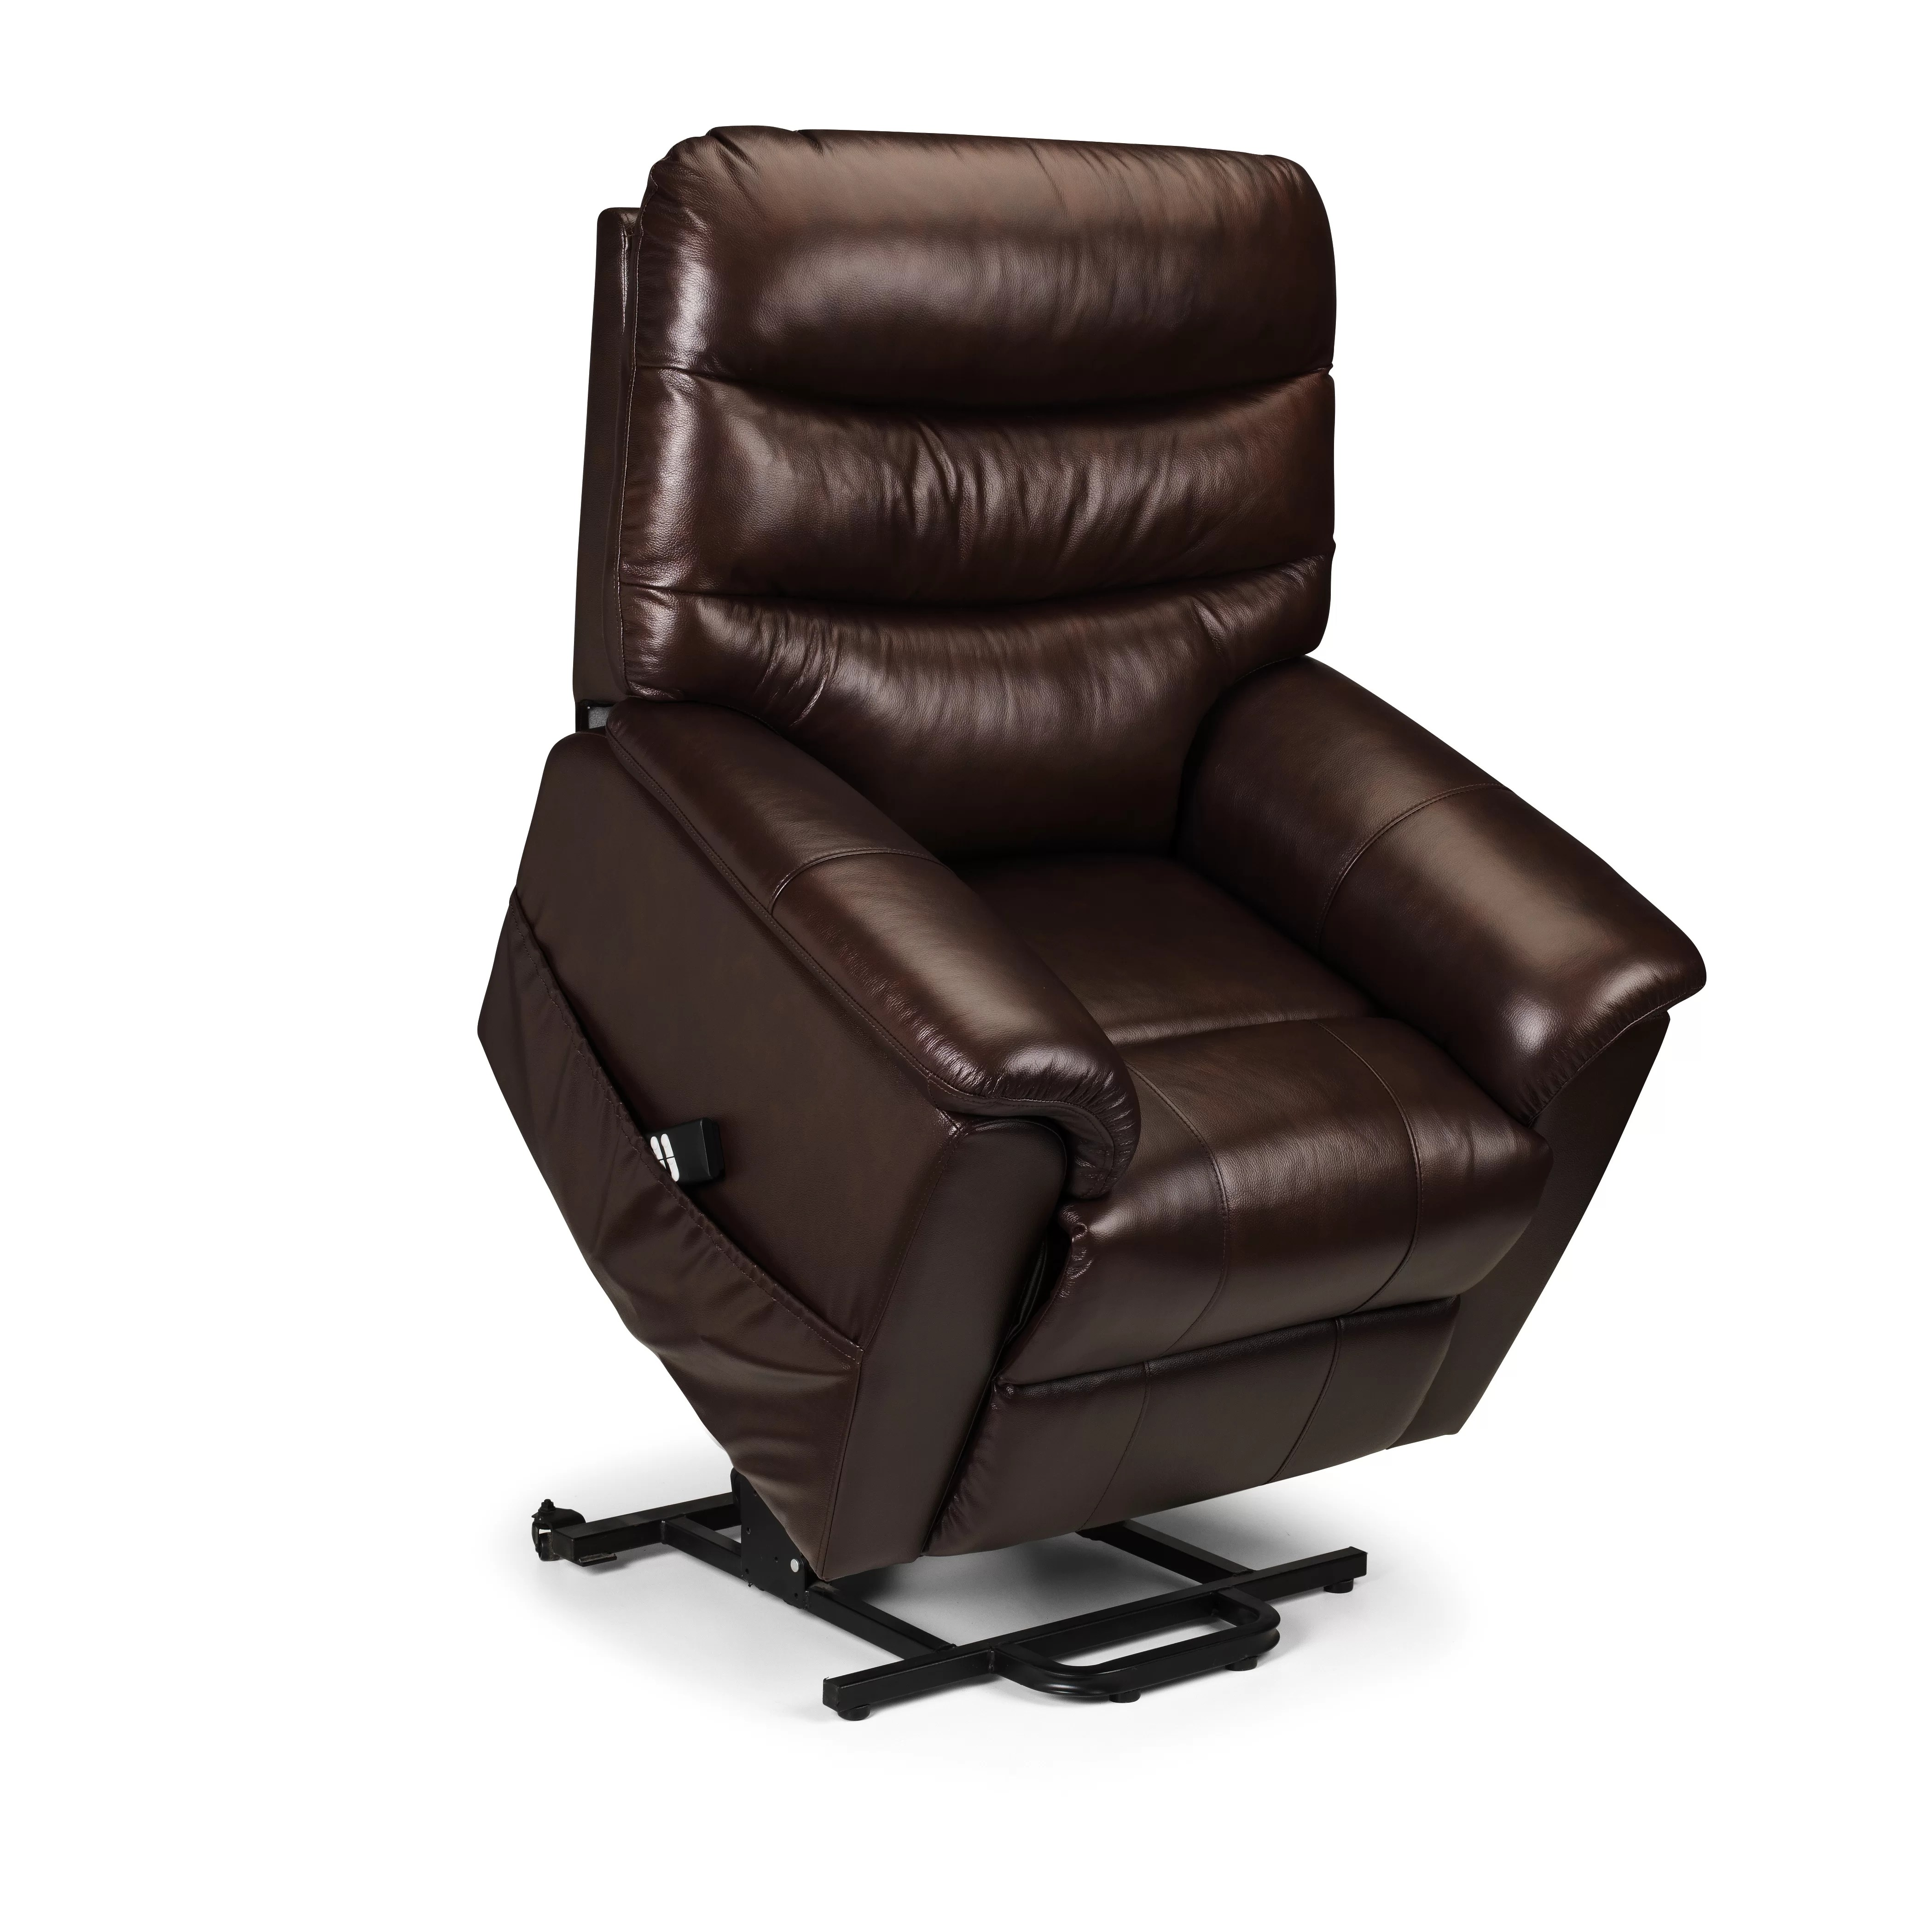 all leather recliner chairs best chair massager home aberdeen dual motor rise